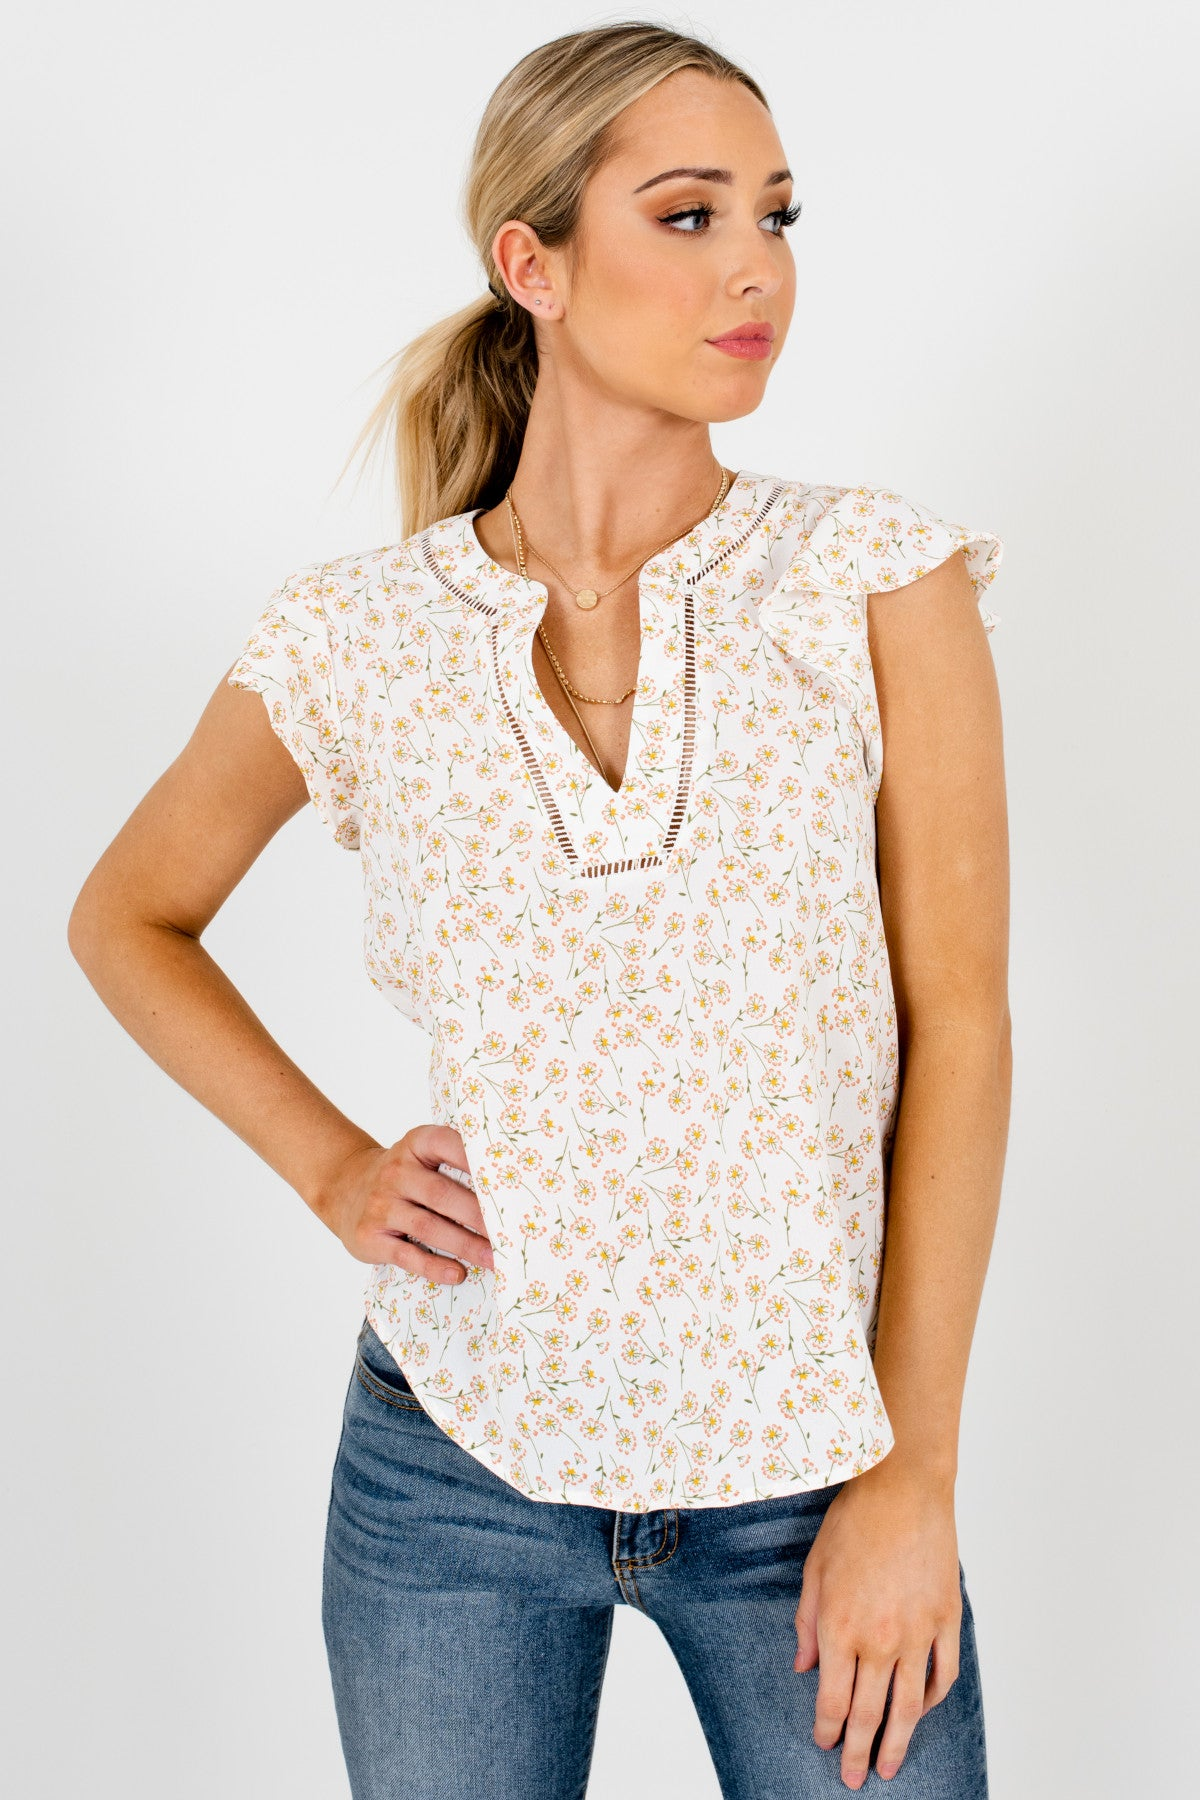 White Dandelion Print Floral Blouses with Ruffle Sleeves and Lace Accents